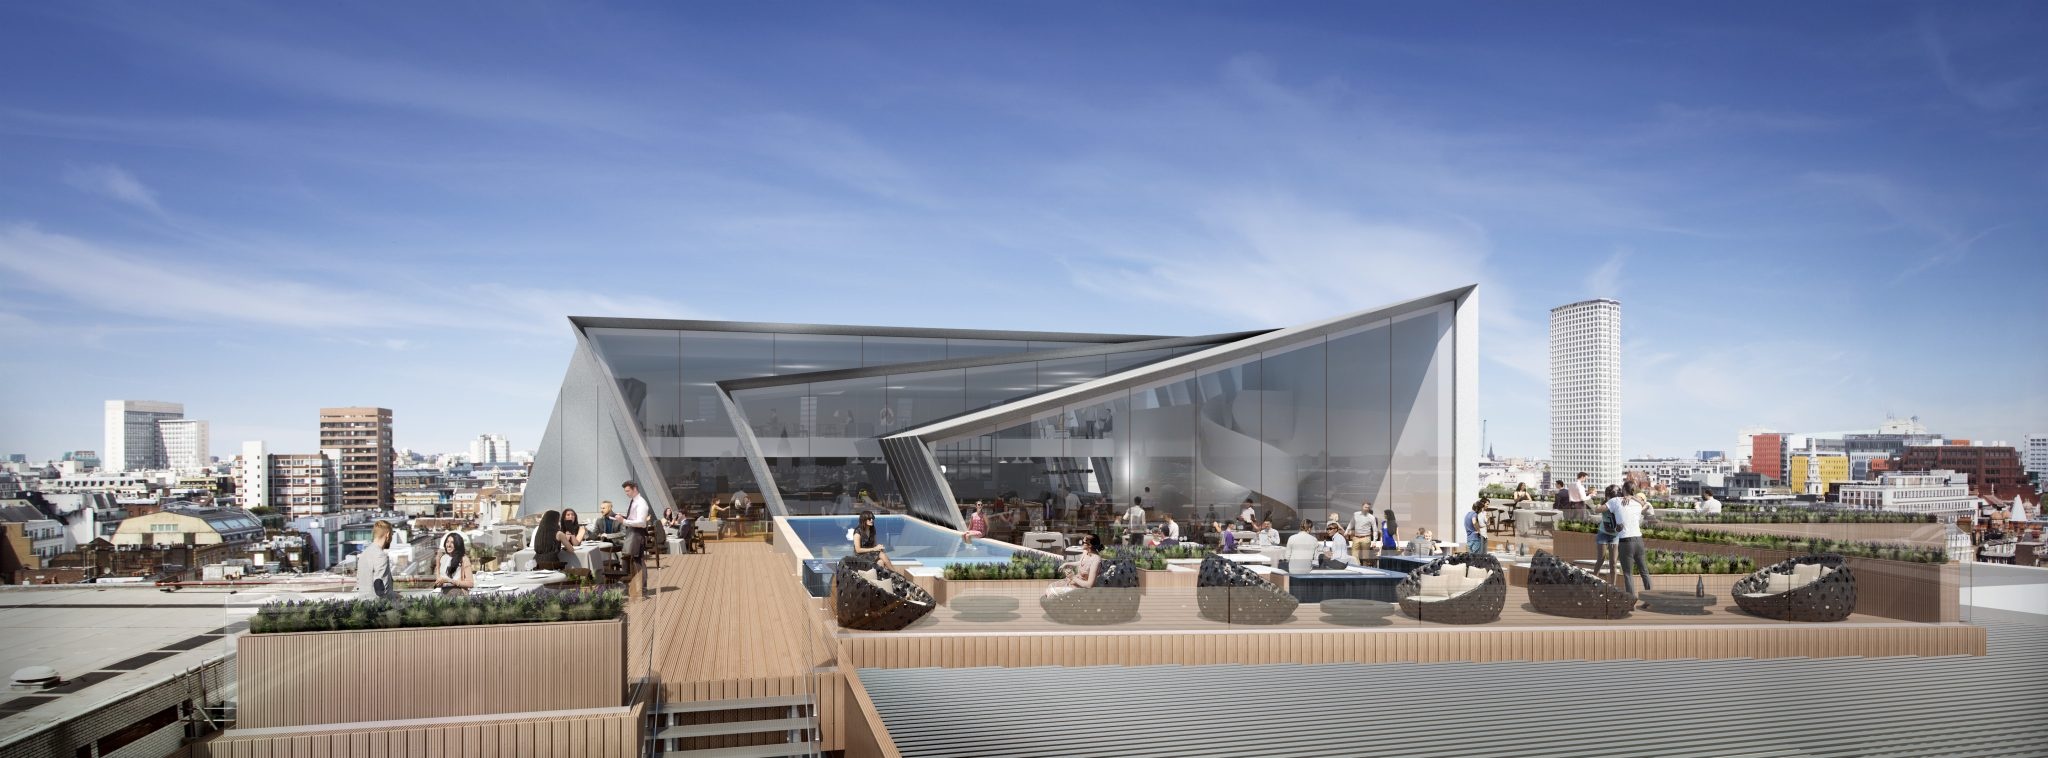 Trocadero Roof Top Bar - Darling Associates